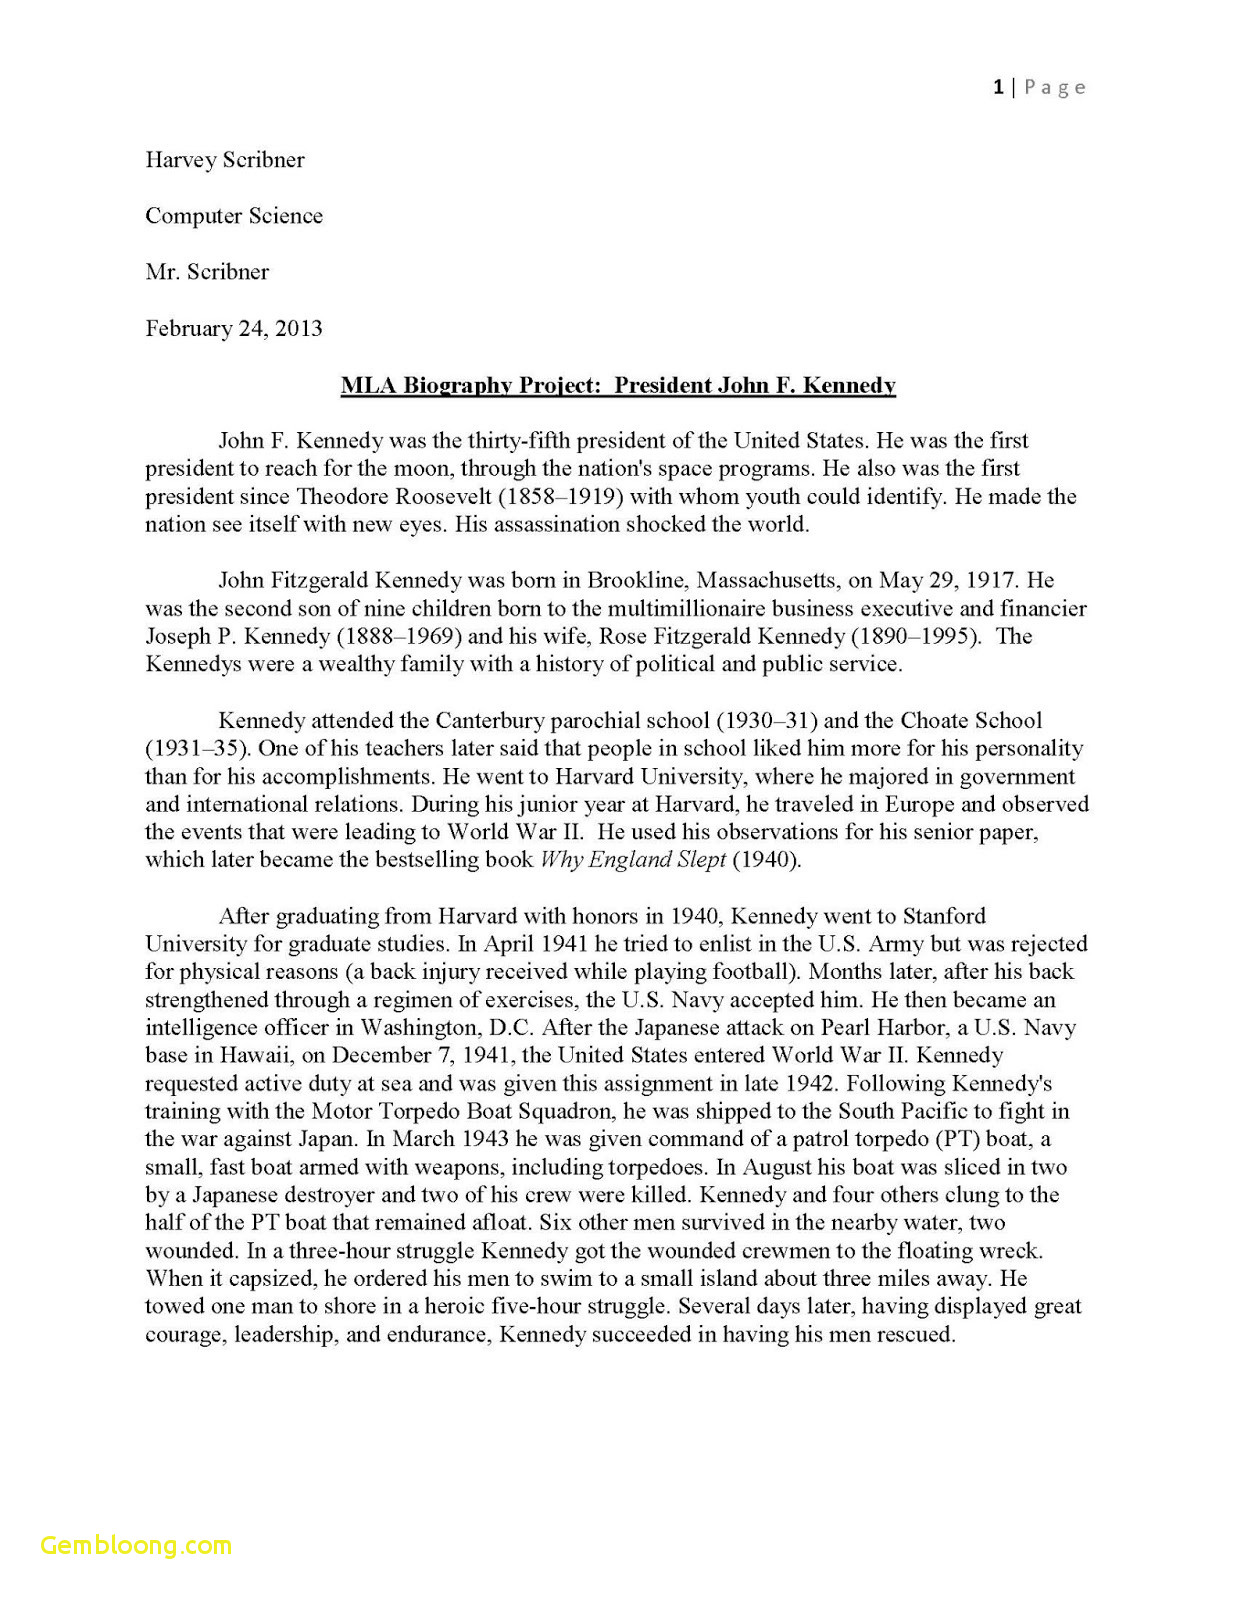 002 Essay Example Common Application Examples Unique Mon App Essays Etame Mibawa Of Formidable The Ivy League Failure Full